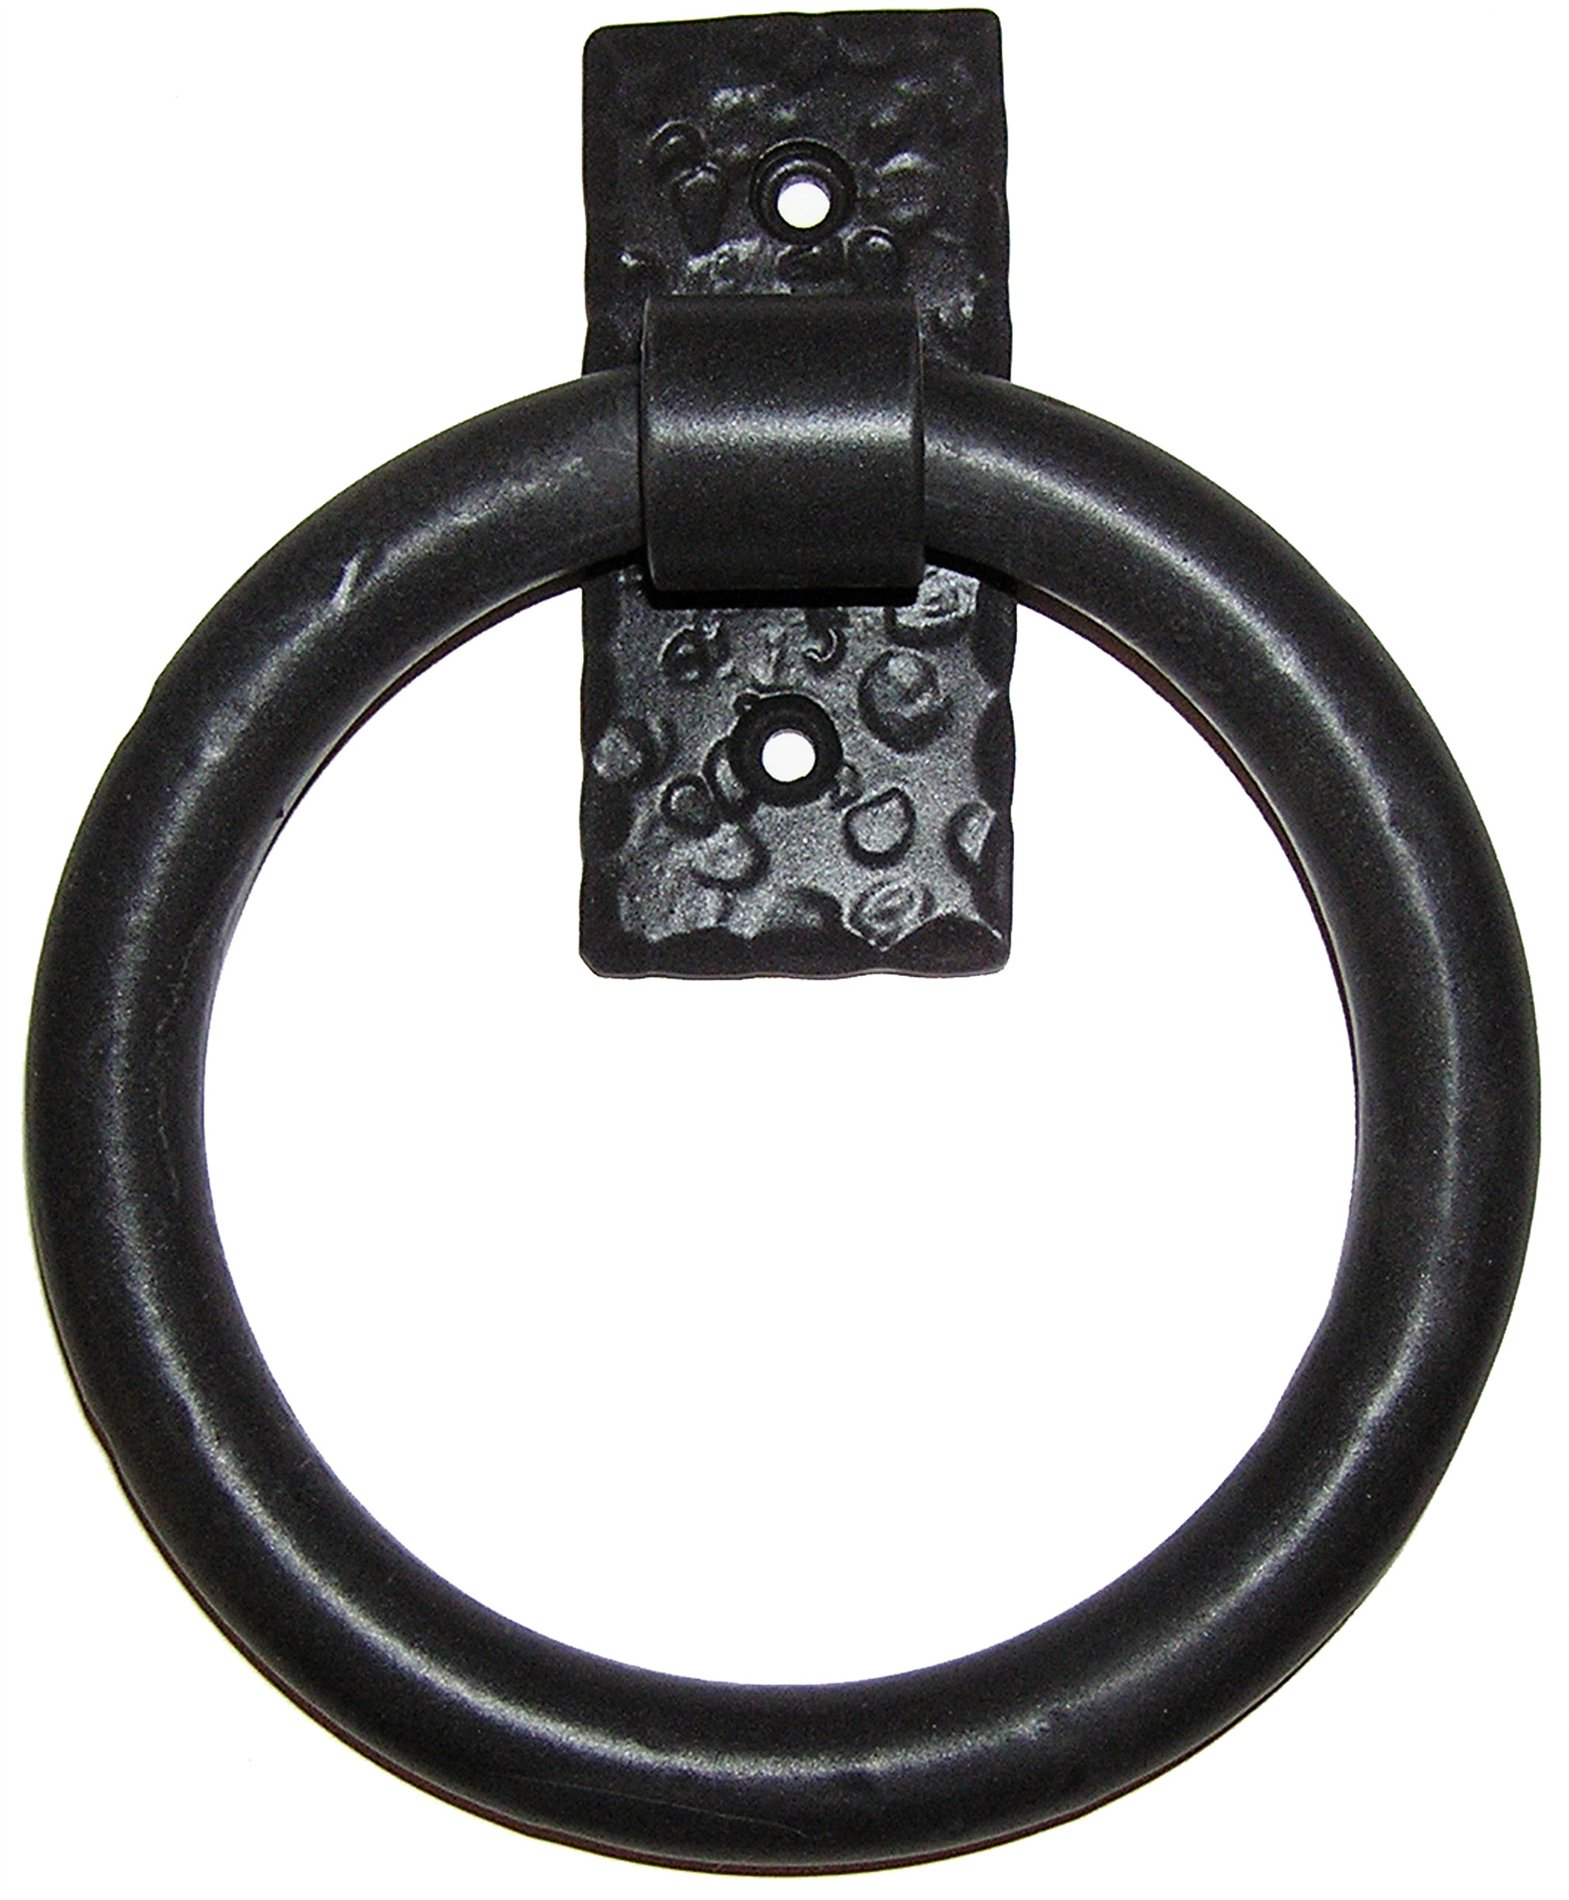 Agave Ironworks Kn015 Smooth Ring Door Knocker Agi Kn015